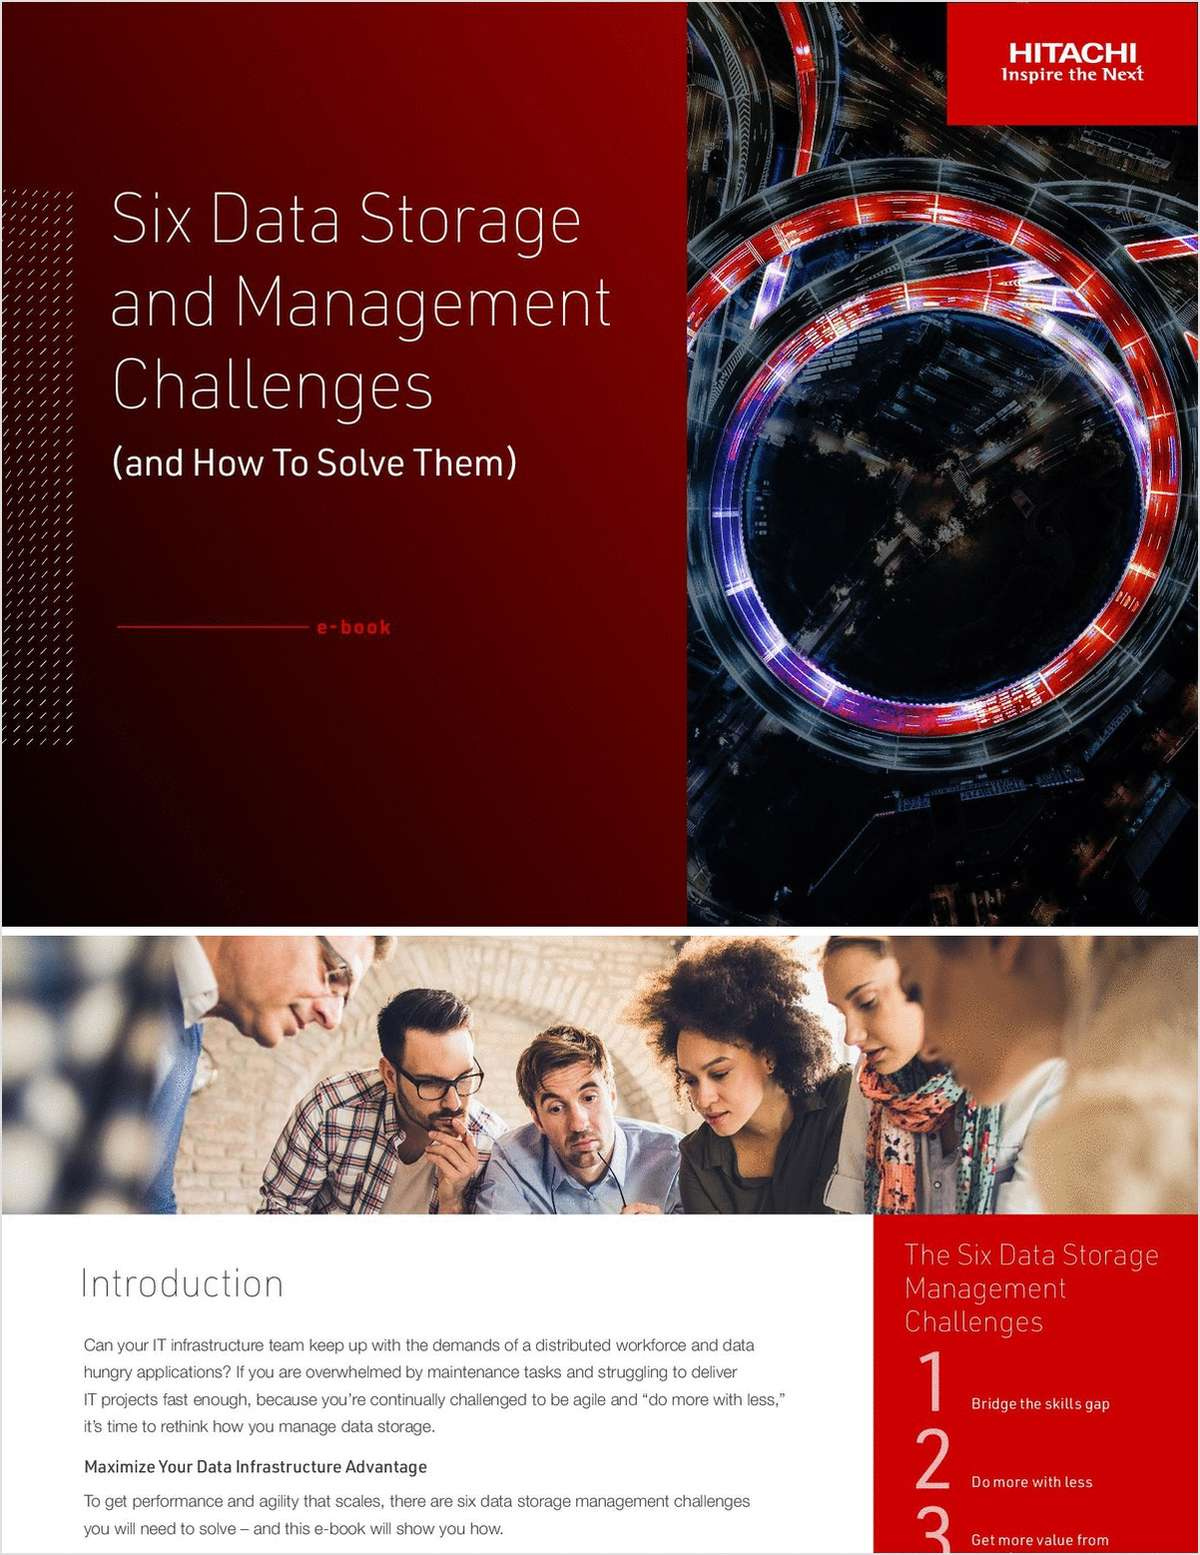 Six Data Storage and Management Challenges (and How To Solve Them)